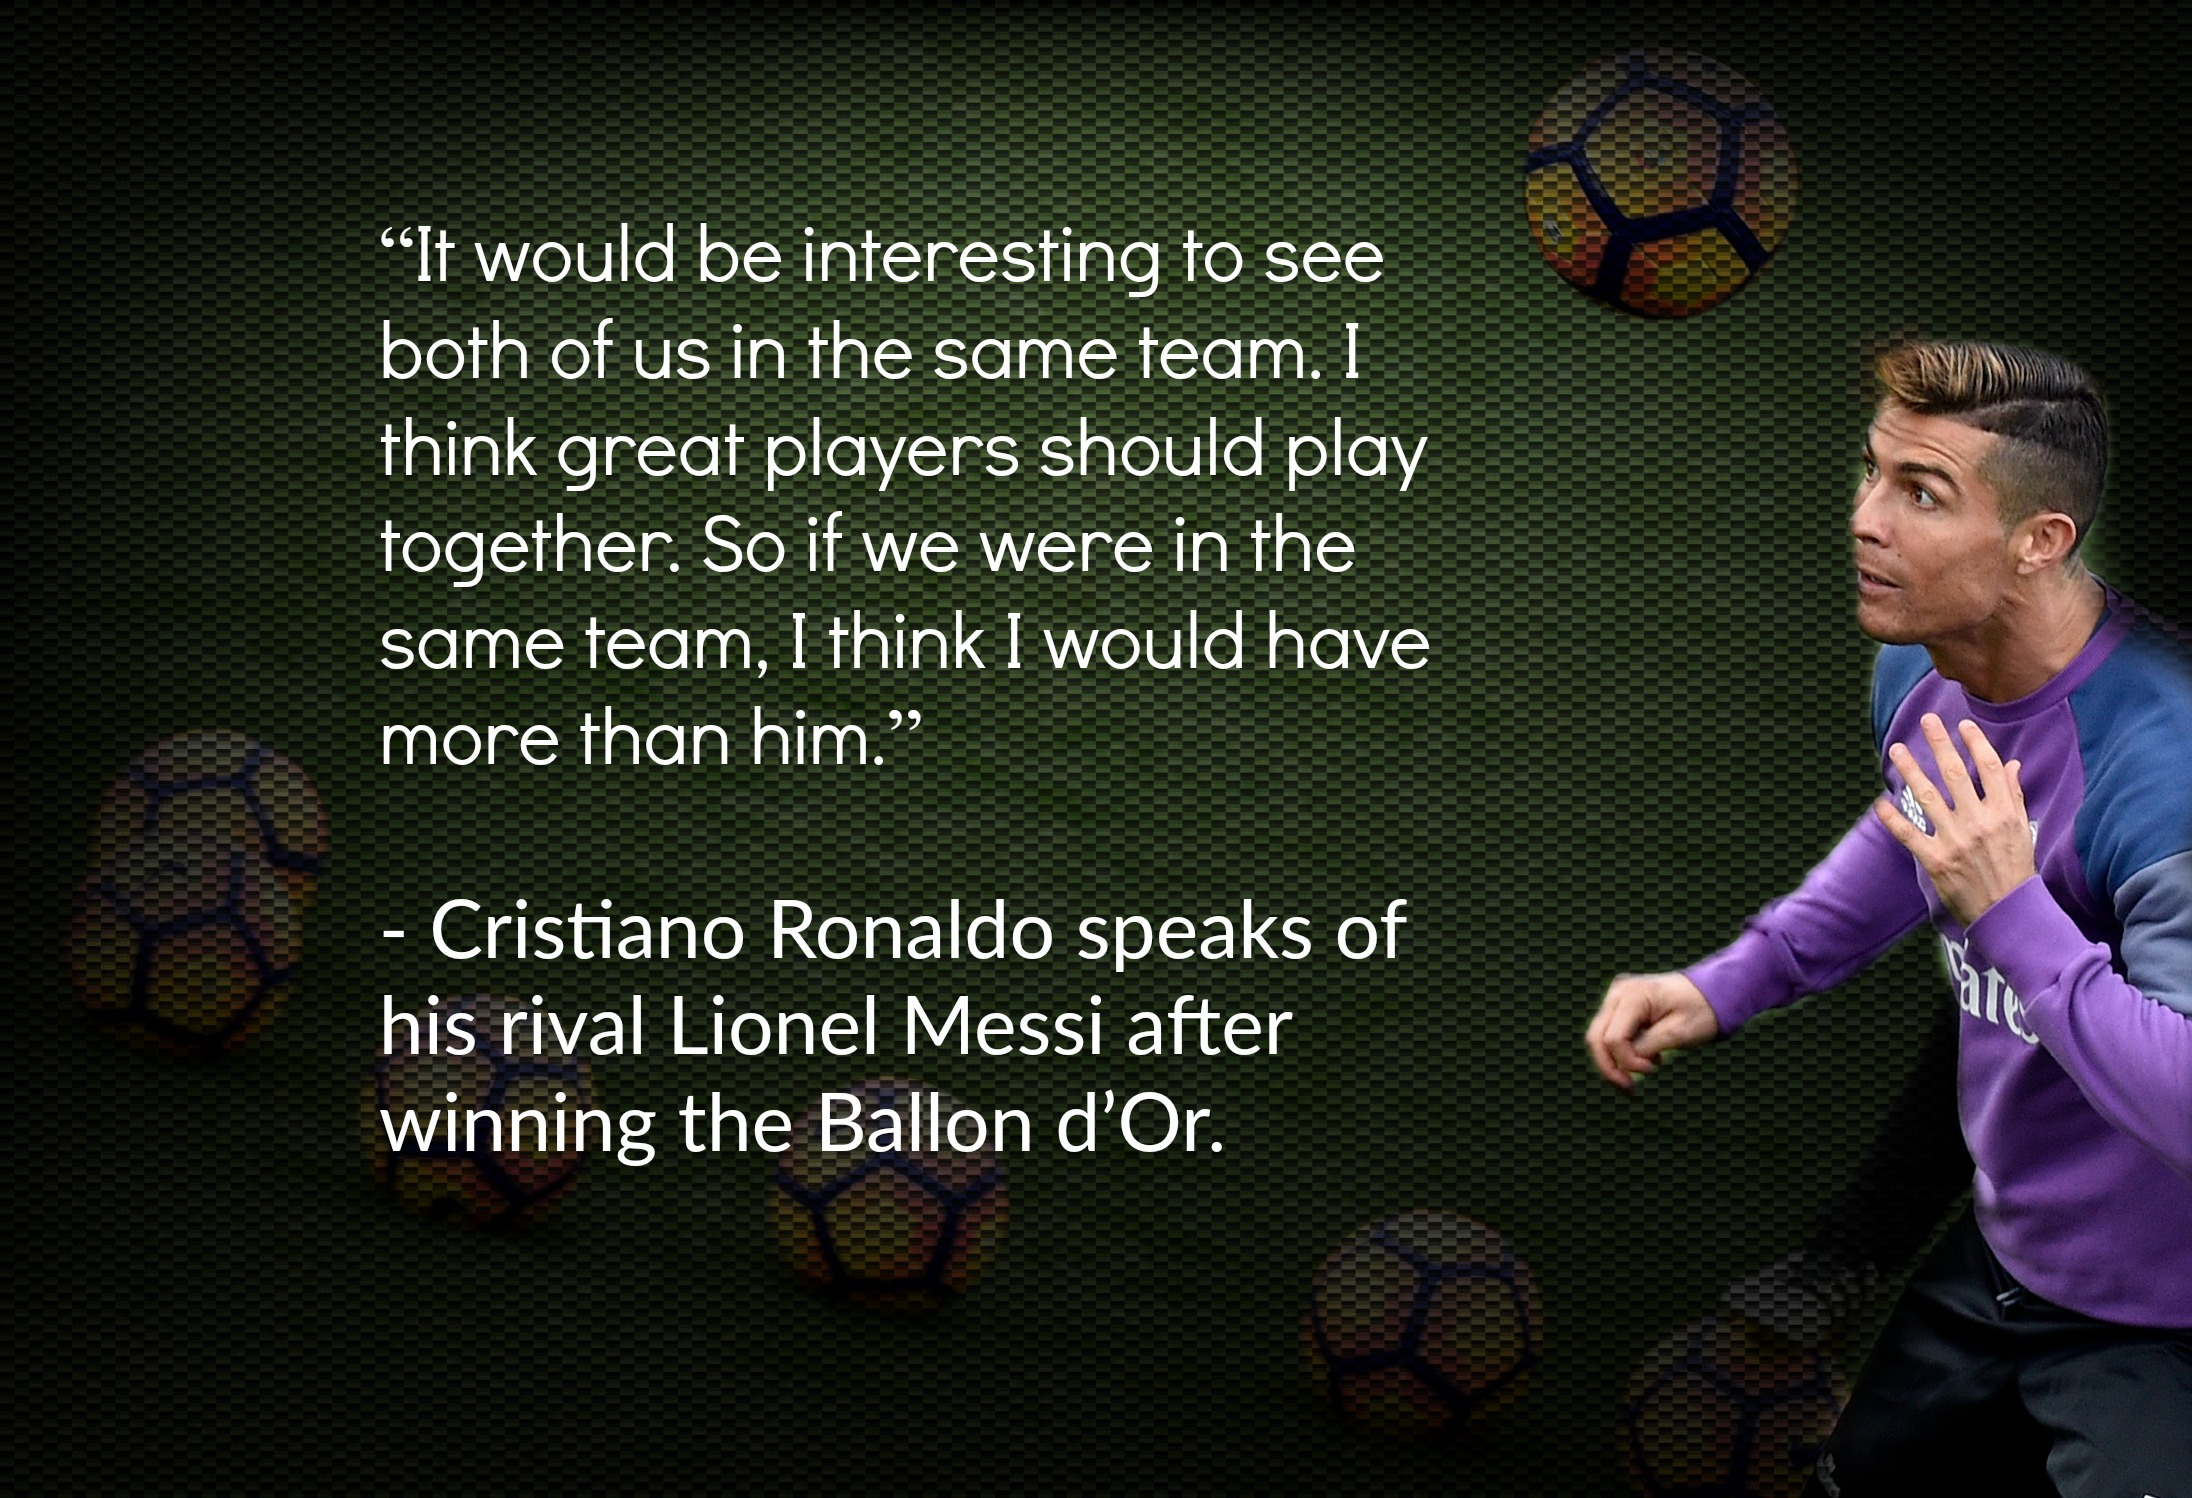 Quotes of the Week: Cristiano Ronaldo issues words of